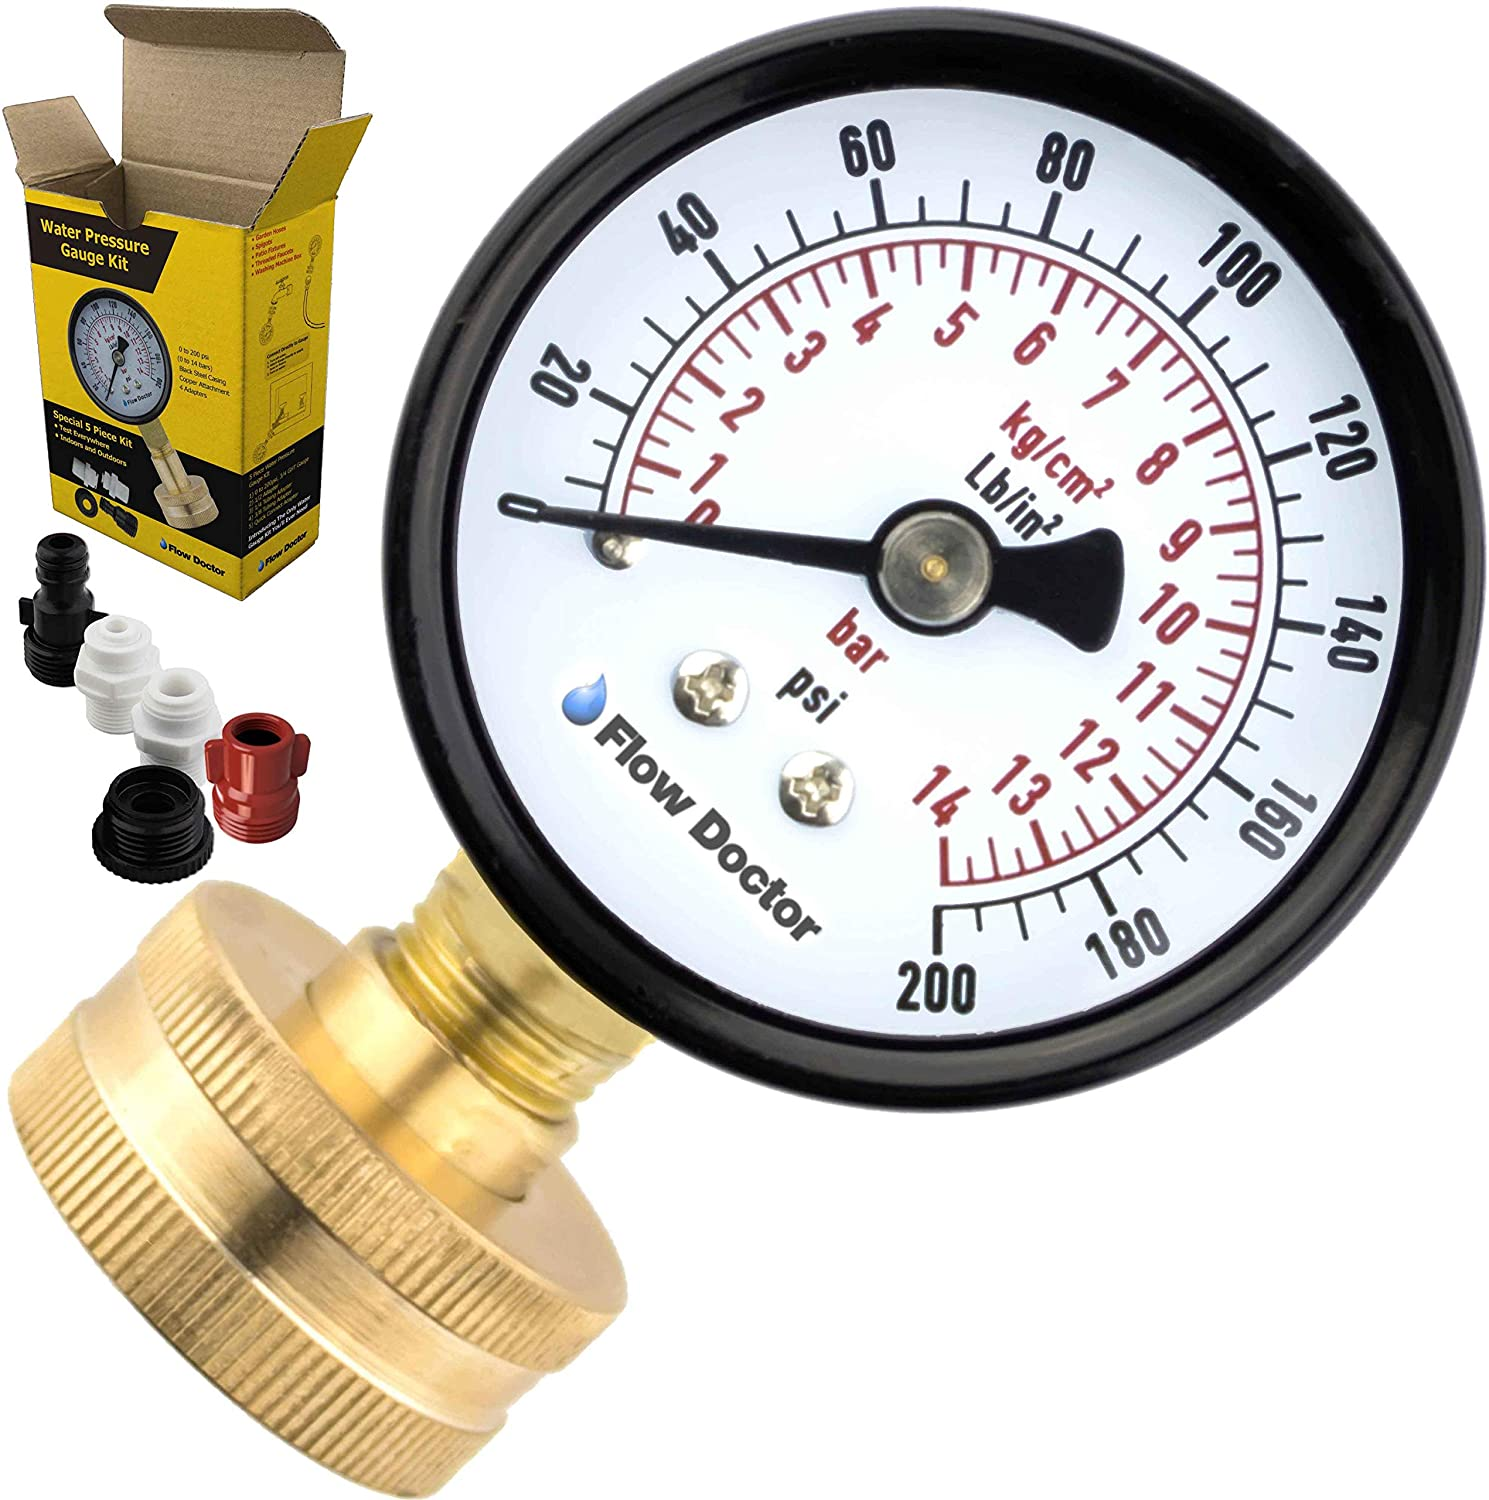 """Flow Doctor Water Pressure Gauge Kit, All Purpose, 6 Parts Kit, 0 to 200 Psi, 0 to 14 Bars, Standard 3/4"""" Female Garden Hose Thread Plus 5 Adapters to Test in Multiple Locations Indoors and Outdoors : Garden & Outdoor"""